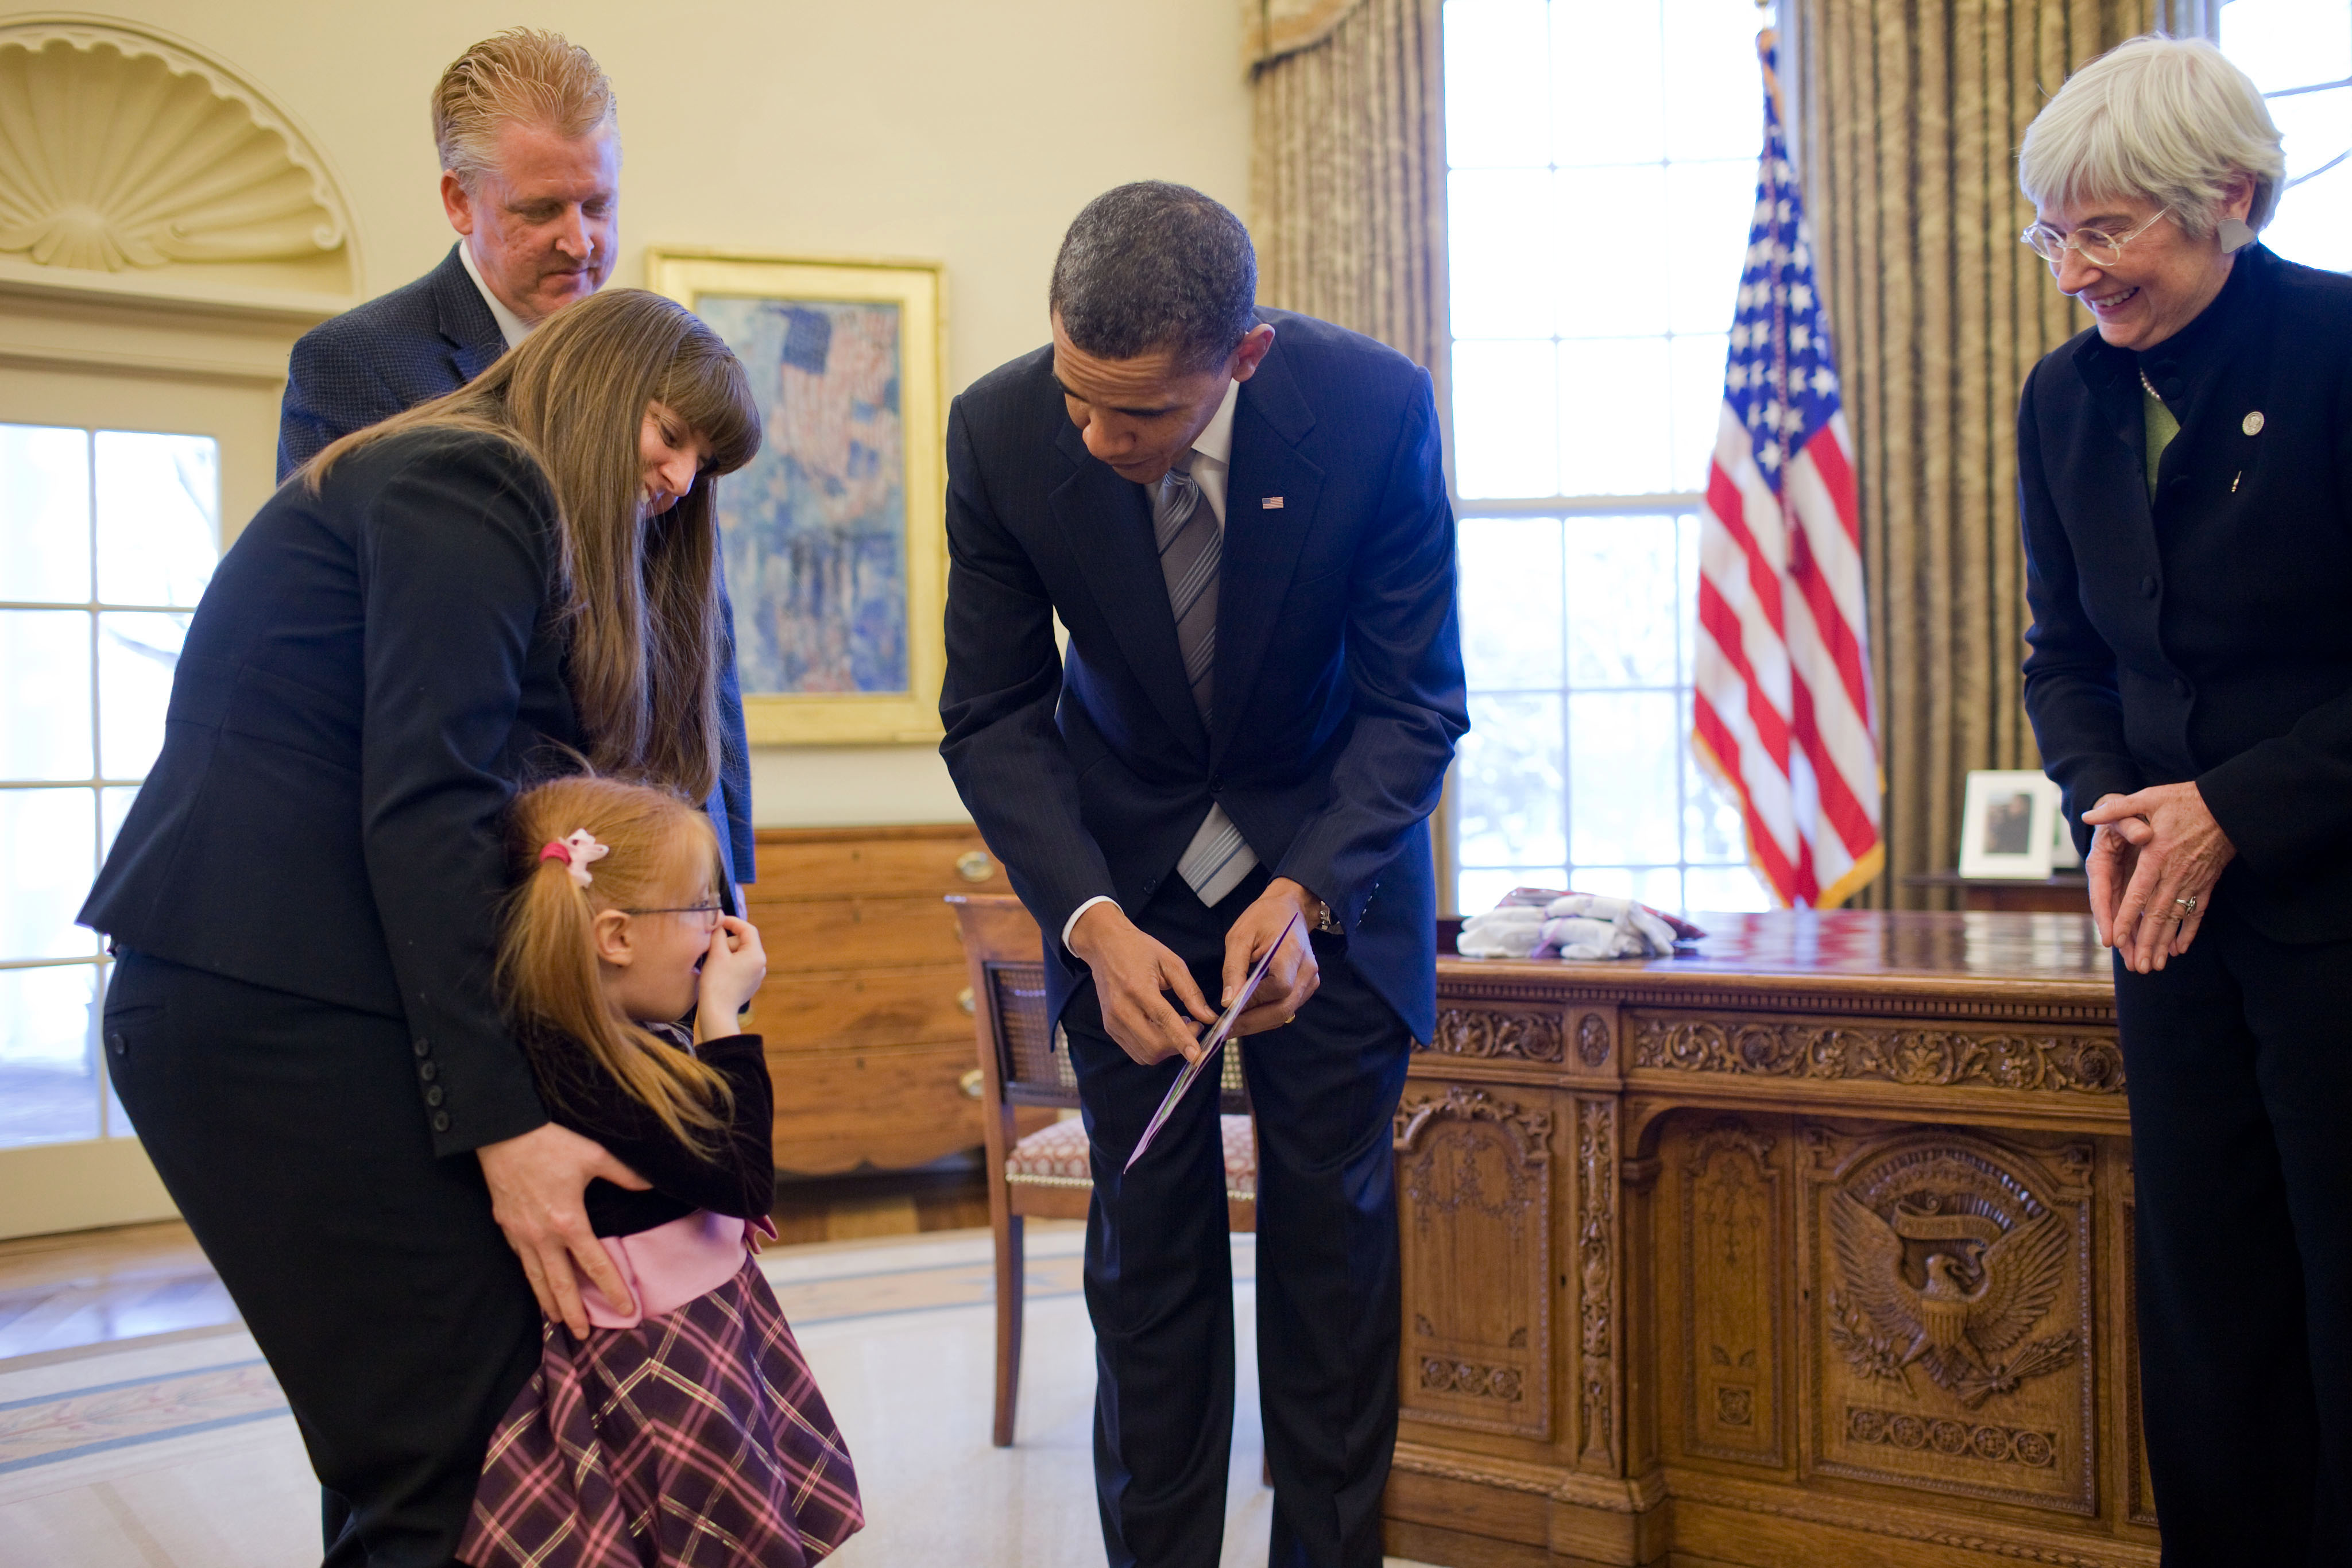 The President greets March Of Dimes ambassador families